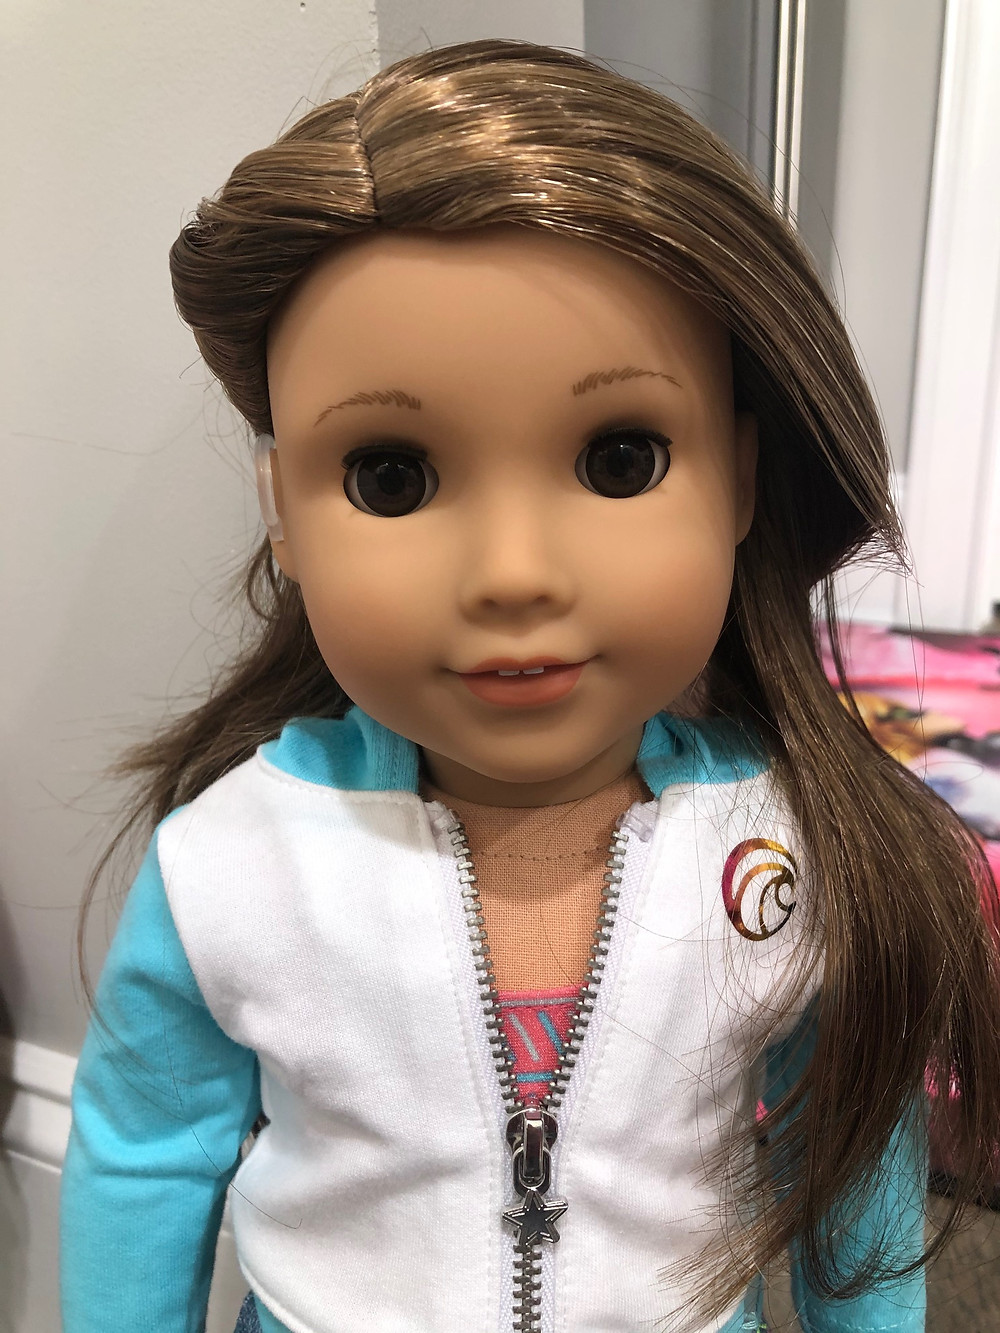 GOTY 2020, Girl of the Year 2020, Joss Kendrick, American Girl Joss, Joss American Girl, GOTY 2020 Joss, Joss Kendrick AG, Doll of the Year 2020, GOTY 2020, Girl of the Year 2020, Joss Kendrick, American Girl Joss, Joss American Girl, GOTY 2020 Joss, Joss Kendrick AG, Doll of the Year 2020, GOTY 2020, Girl of the Year, GOTY 2020, Girl of the Year 2020, Joss Kendrick, American Girl Joss, Joss American Girl, GOTY 2020 Joss, Joss Kendrick AG, Doll of the Year 2020, GOTY 2020, Girl of the Year 2020, Joss Kendrick, American Girl Joss, Joss American Girl, GOTY 2020 Joss, Joss Kendrick AG, Doll of the Year 2020, GOTY 2020, Girl of the Year, GOTY 2020, Girl of the Year 2020, Joss Kendrick, American Girl Joss, Joss American Girl, GOTY 2020 Joss, Joss Kendrick AG, Doll of the Year 2020, GOTY 2020, Girl of the Year 2020, Joss Kendrick, American Girl Joss, Joss American Girl, GOTY 2020 Joss, Joss Kendrick AG, Doll of the Year 2020, GOTY 2020, Girl of the Year